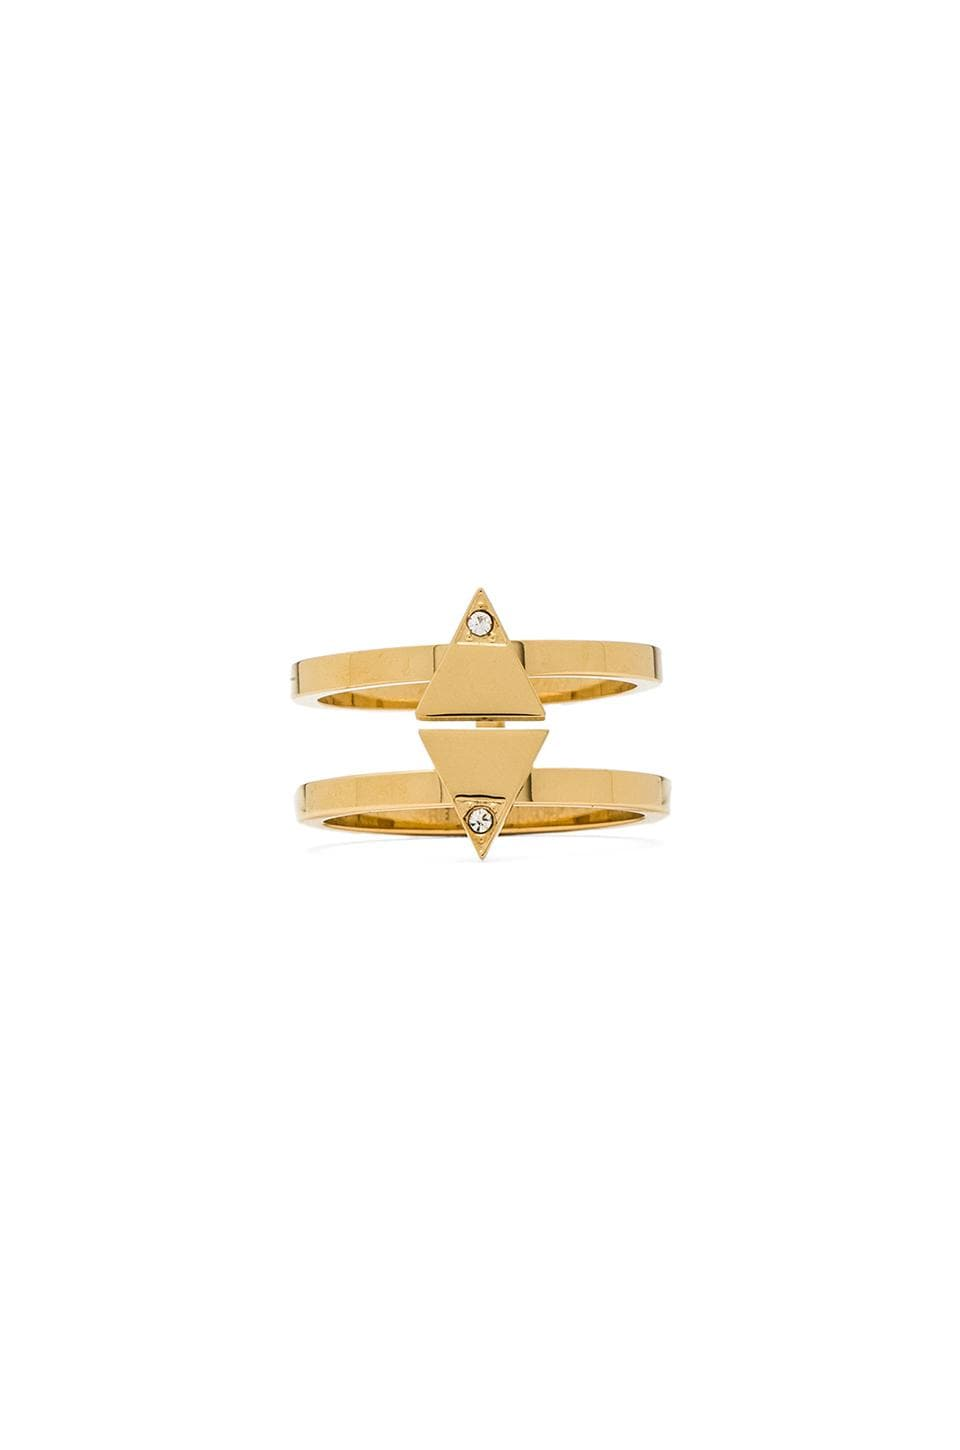 Rebecca Minkoff Diamond Ring in 14 KT Gold Plate